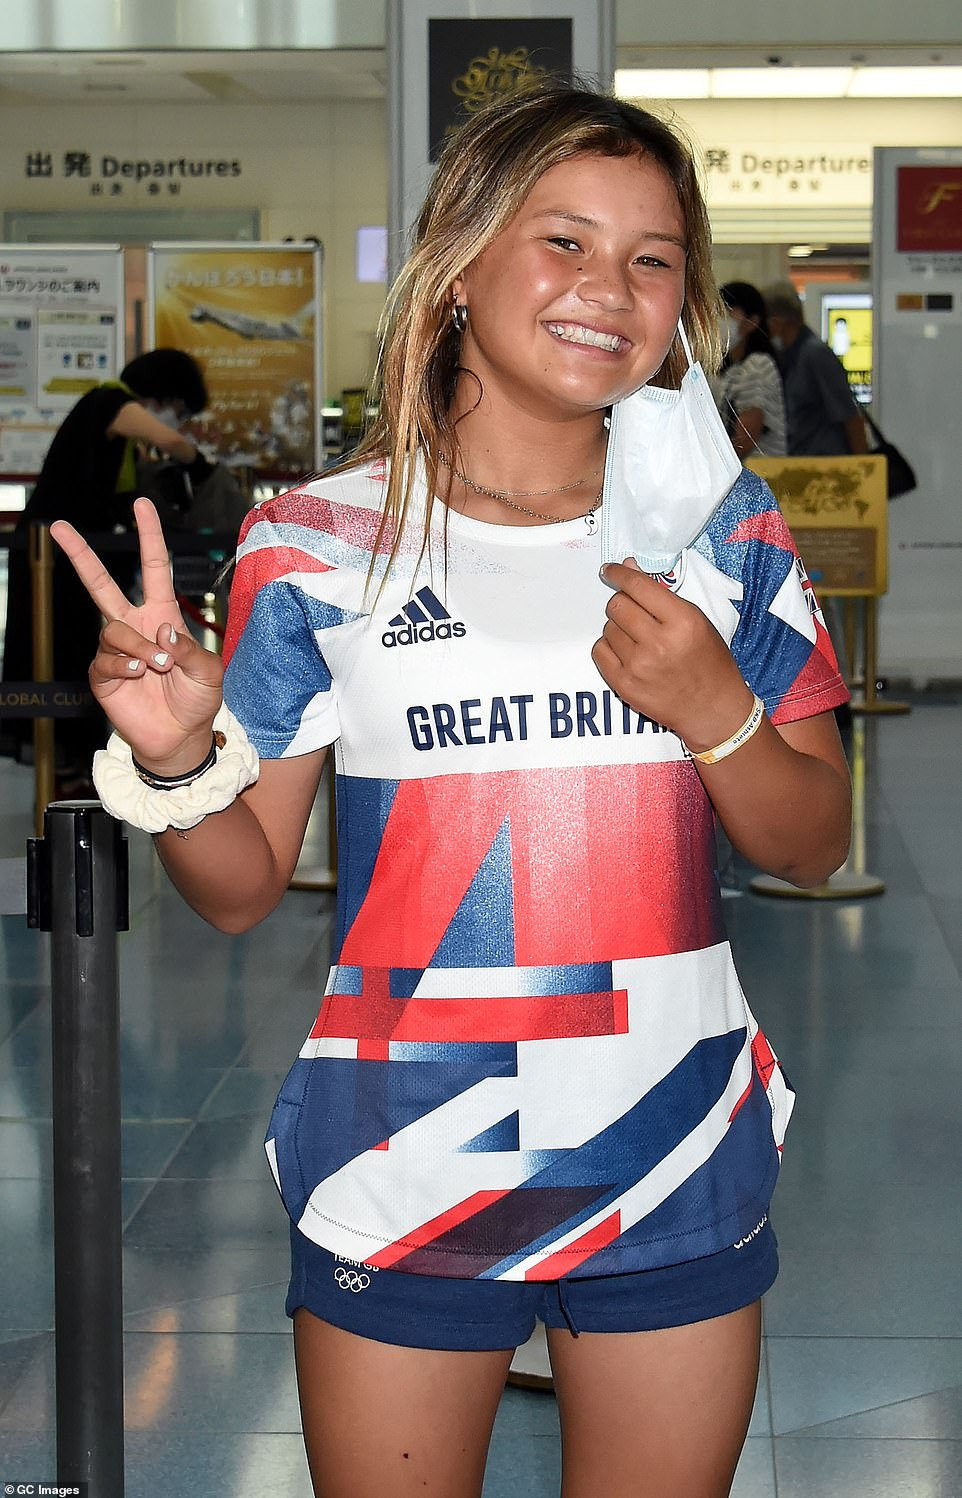 Sky Brown pictured as she returned to the UK today, having won a bronze medal in the skateboarding, despite being just 13 years old